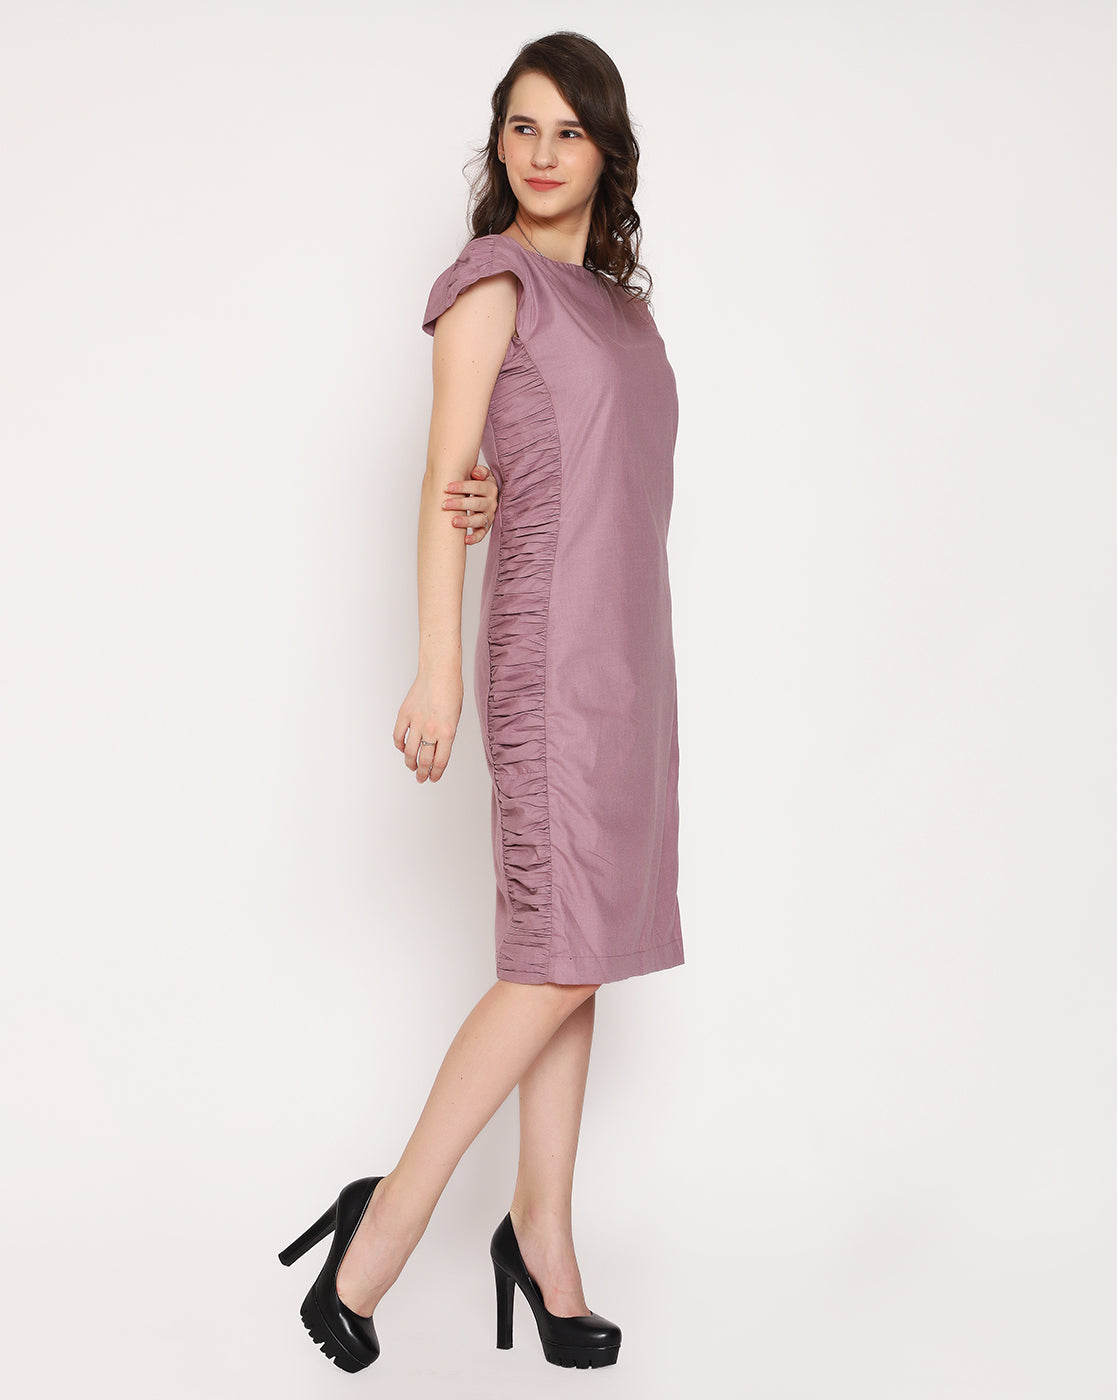 The Beth Dress - Paris Mauve